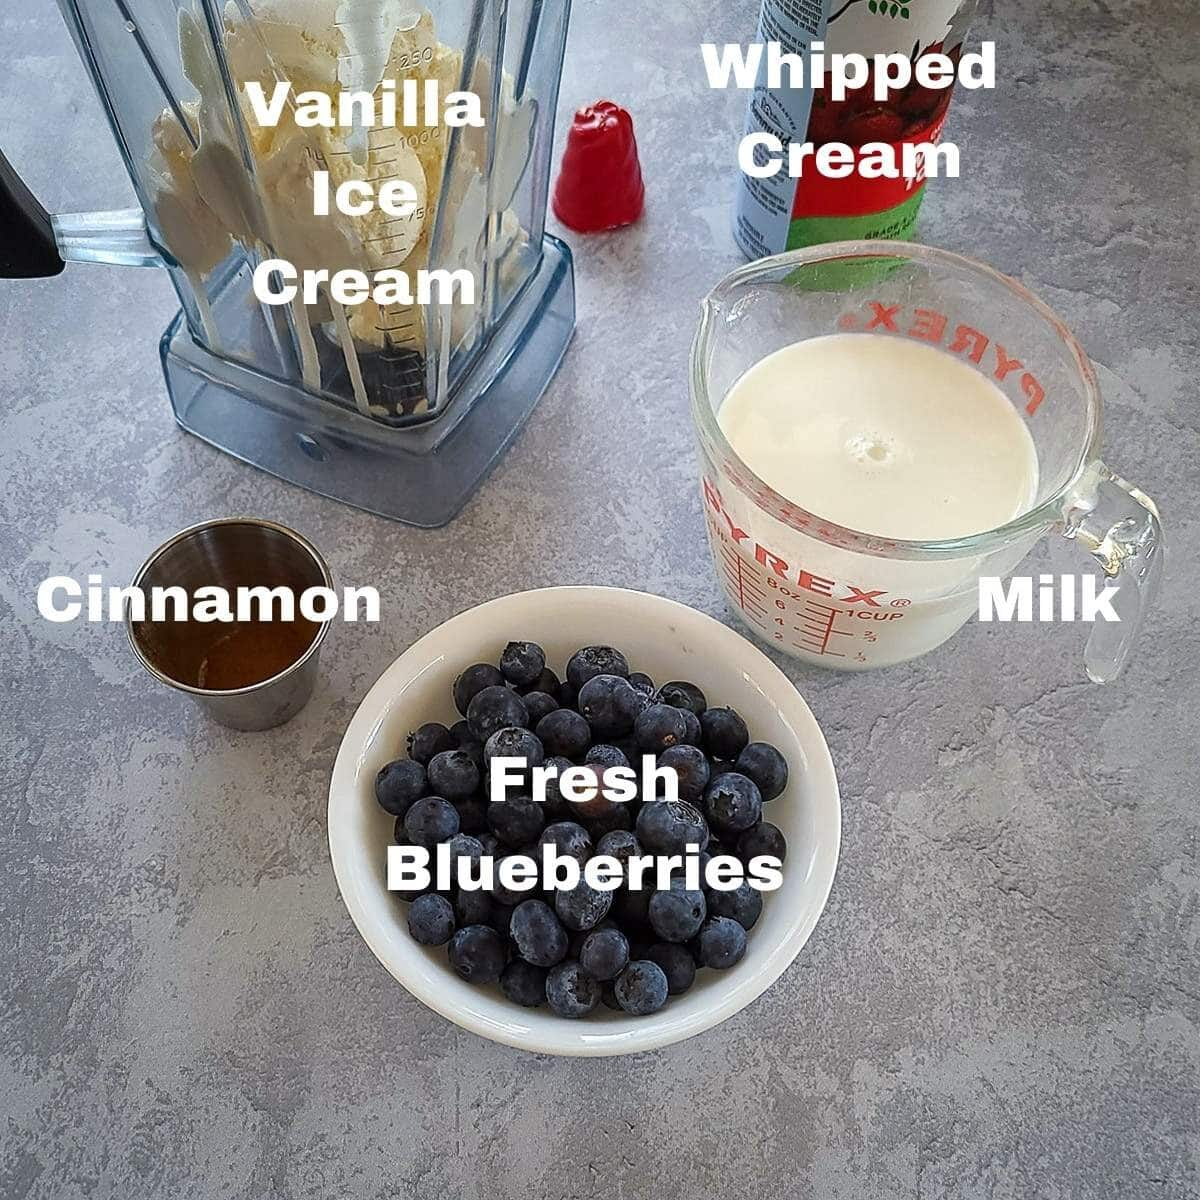 labeled ingredients shown for a blueberry milkshake